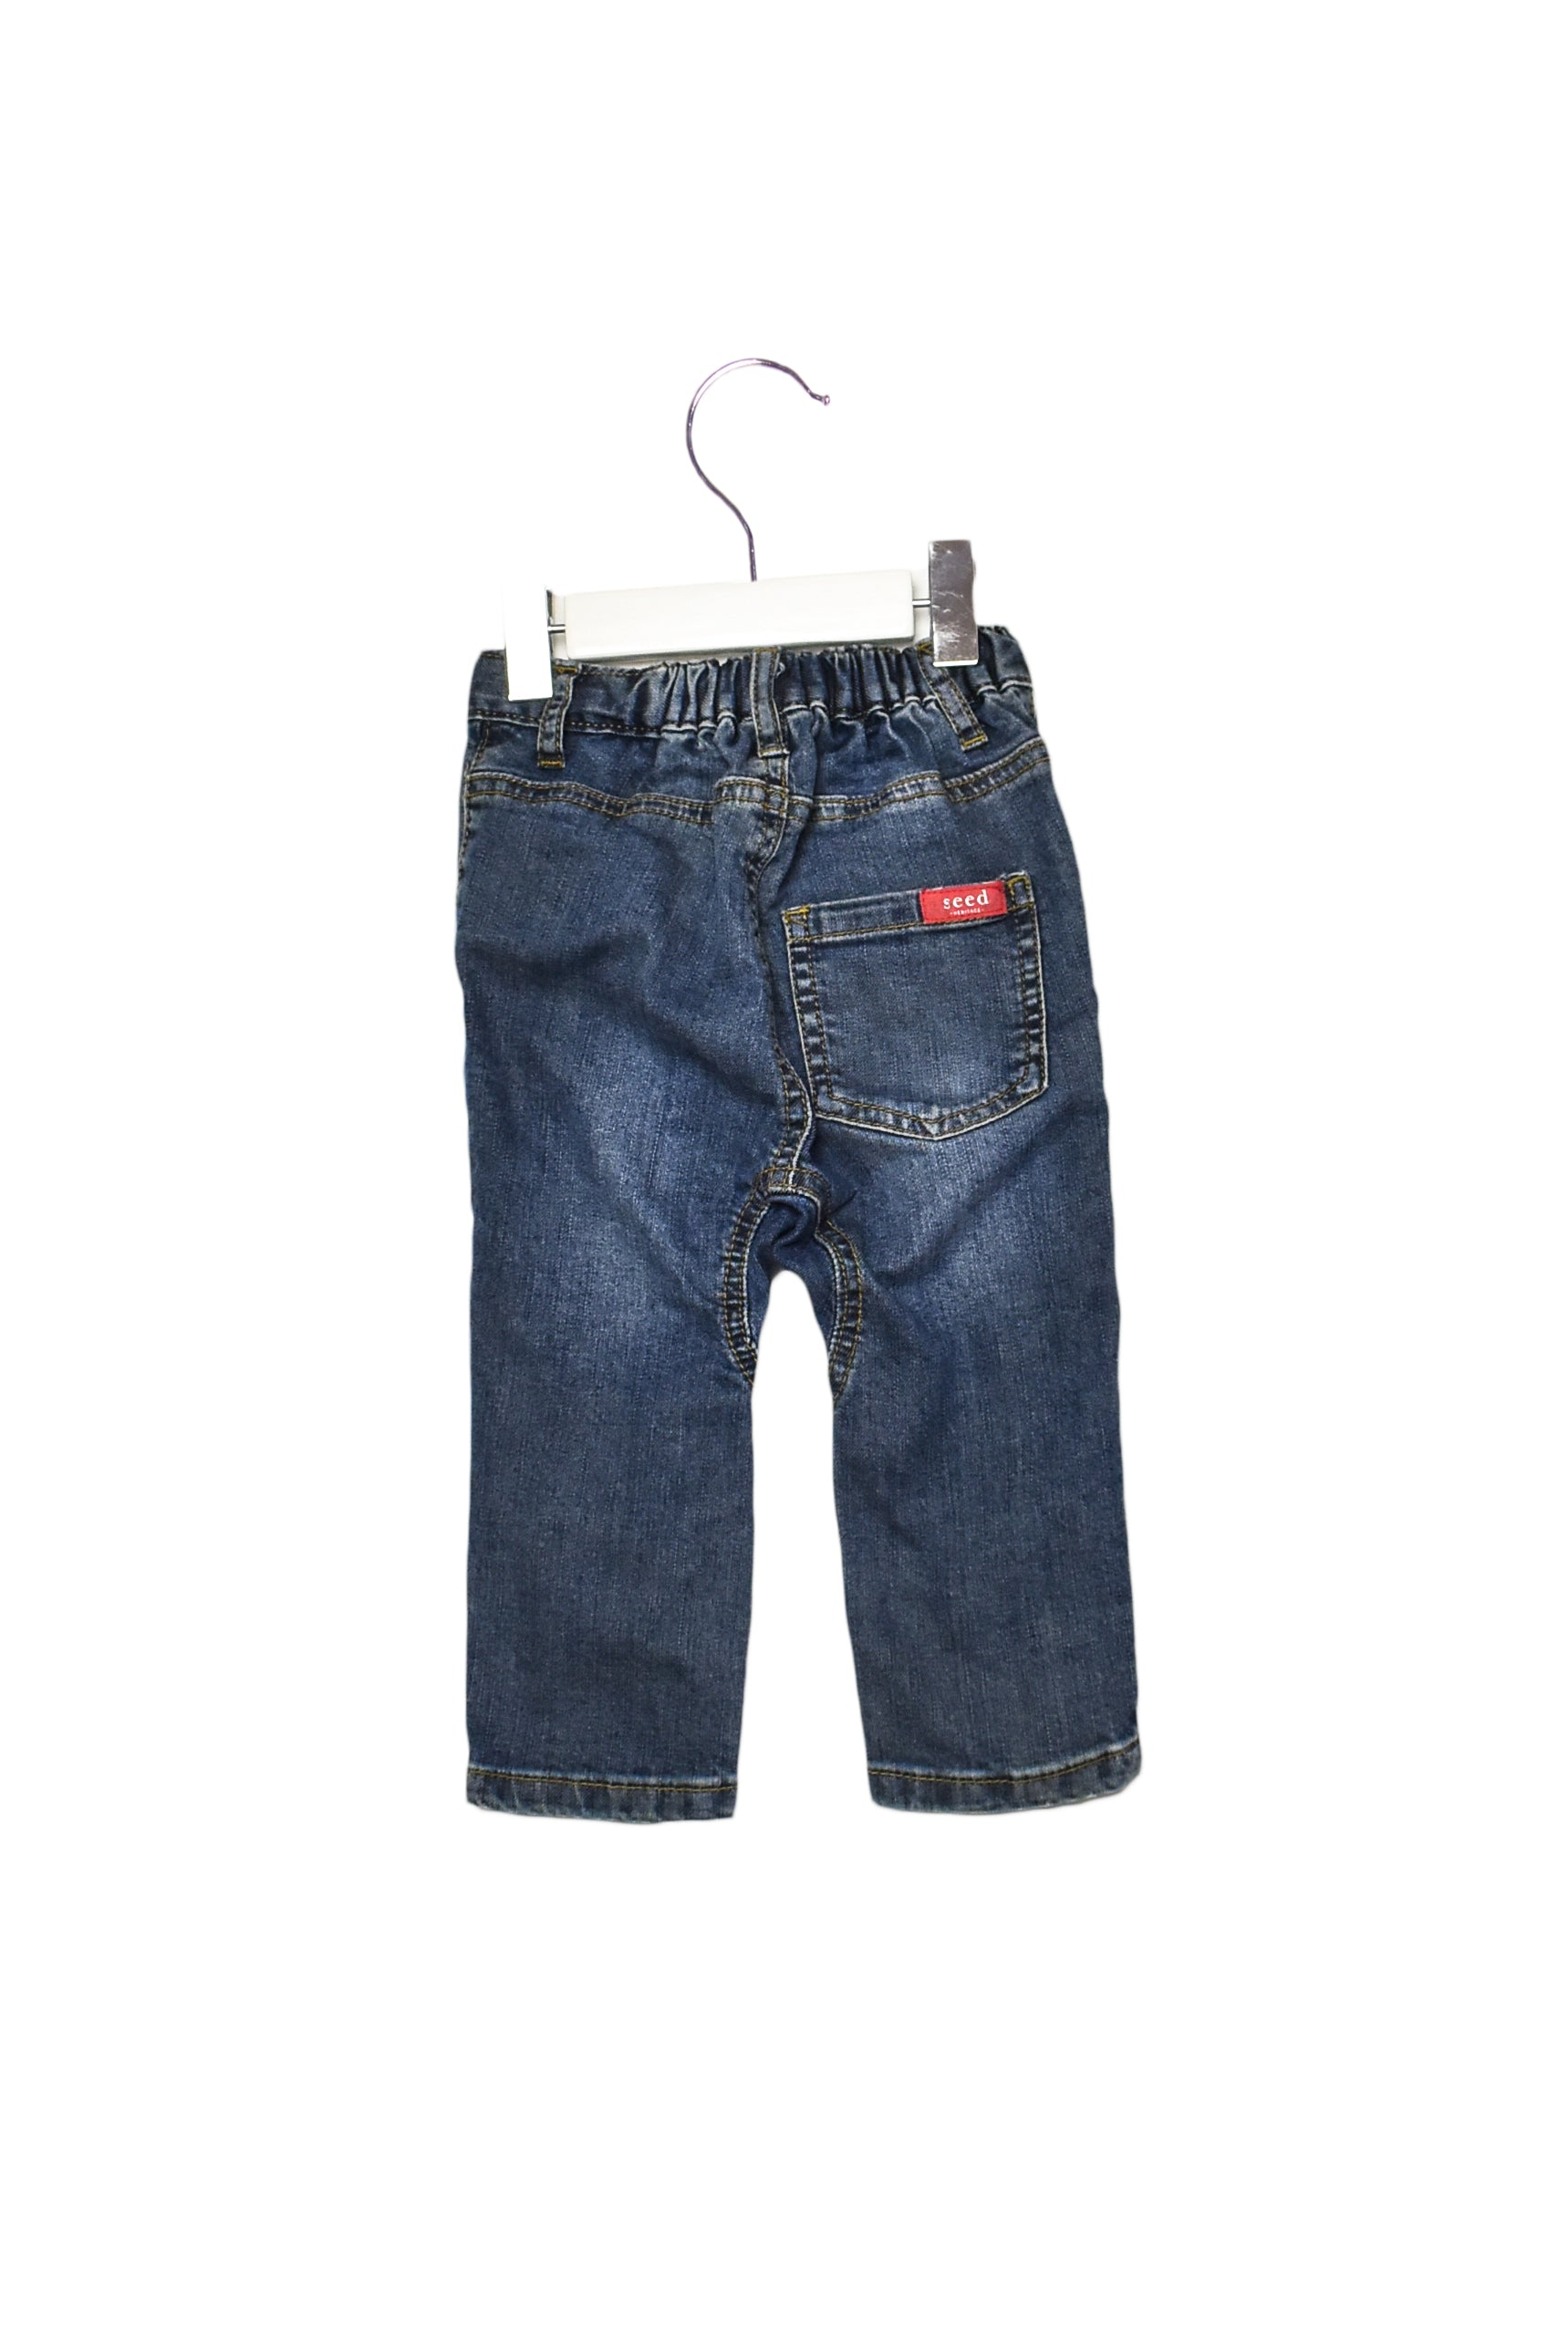 10012172 Seed Baby ~ Jeans 12-18M at Retykle